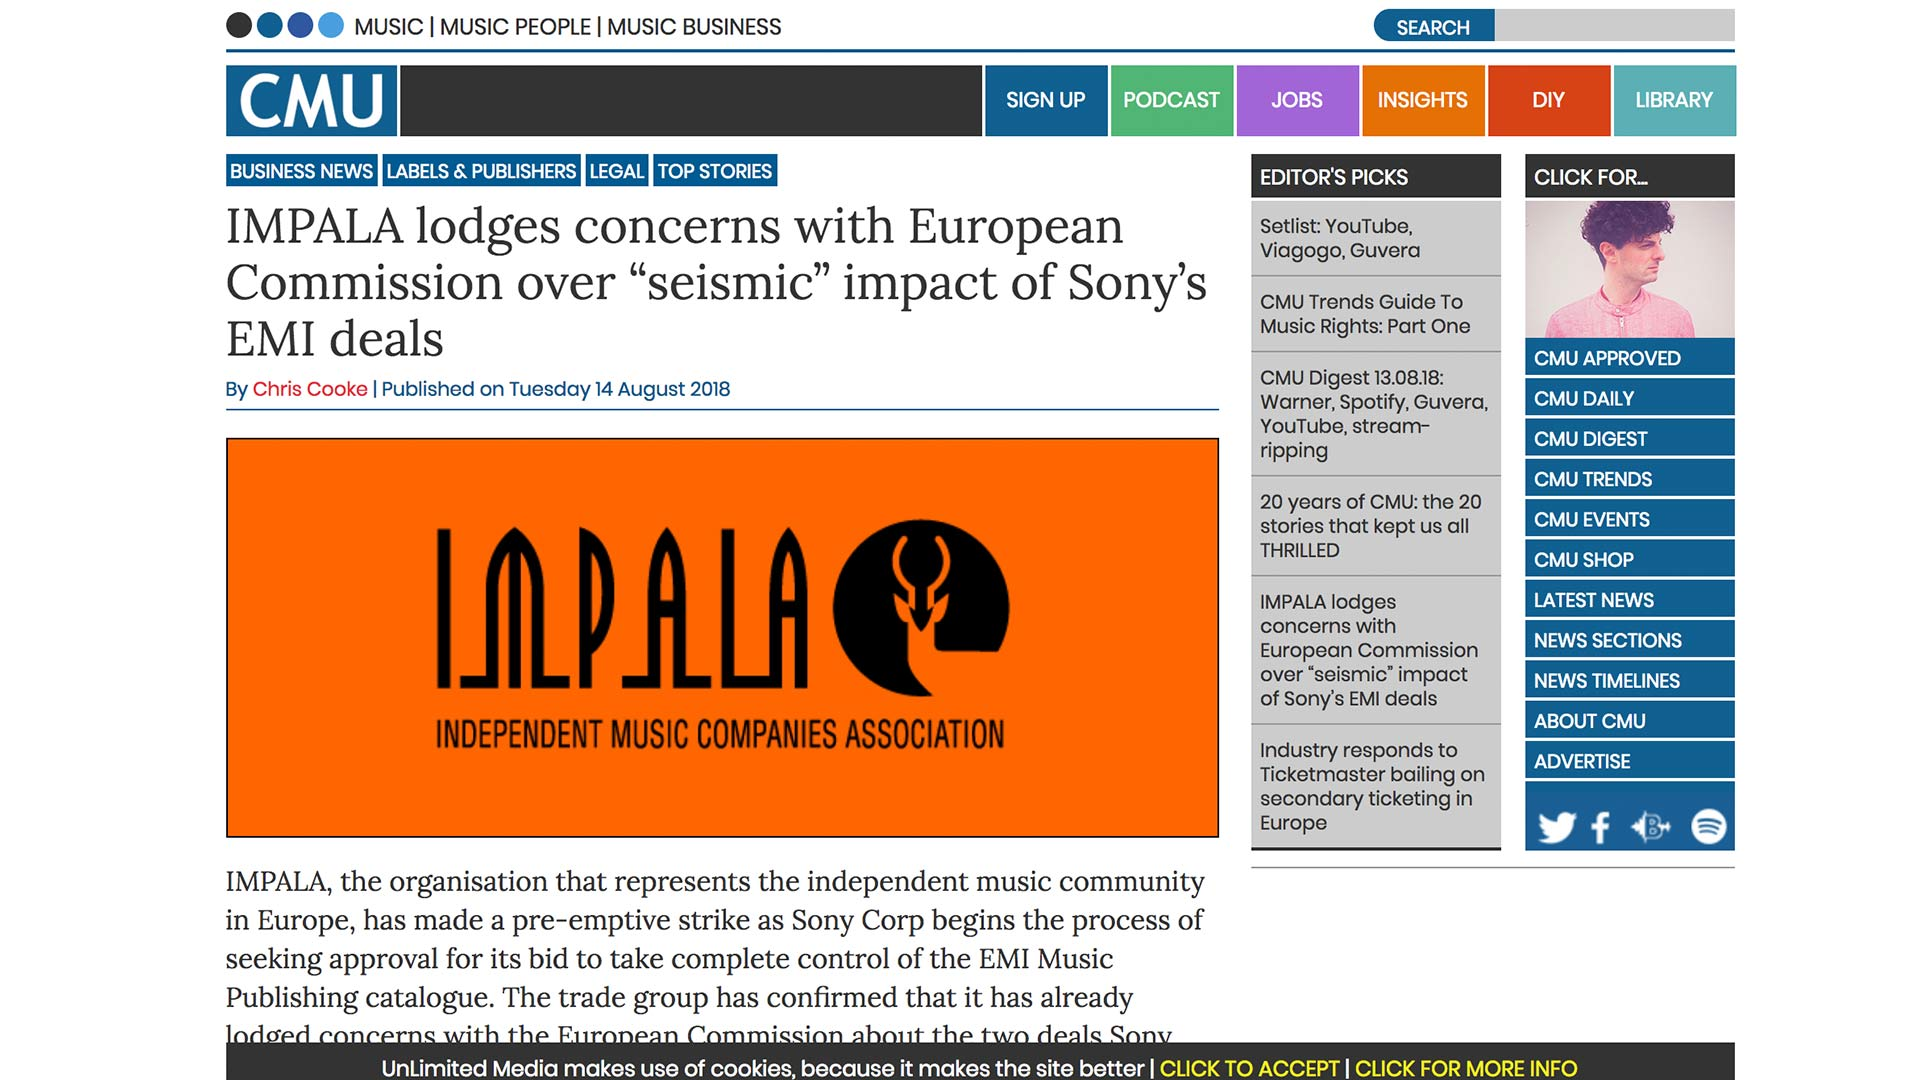 """Fairness Rocks News IMPALA lodges concerns with European Commission over """"seismic"""" impact of Sony's EMI deals"""